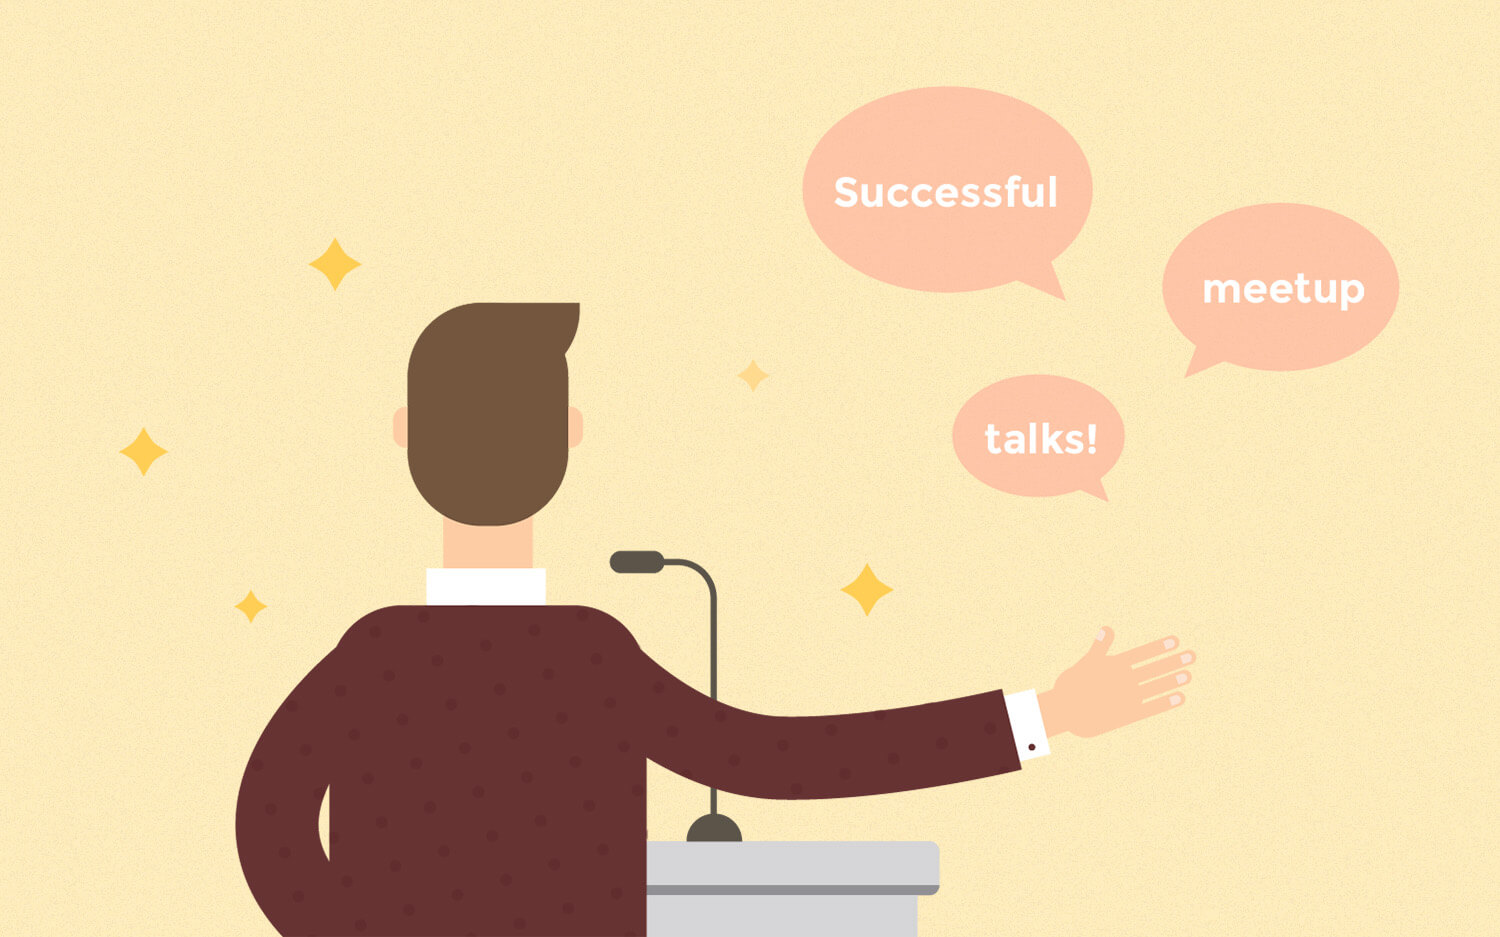 Become a master of public speaking and give stellar meetup talks by tackling the most common excuses.